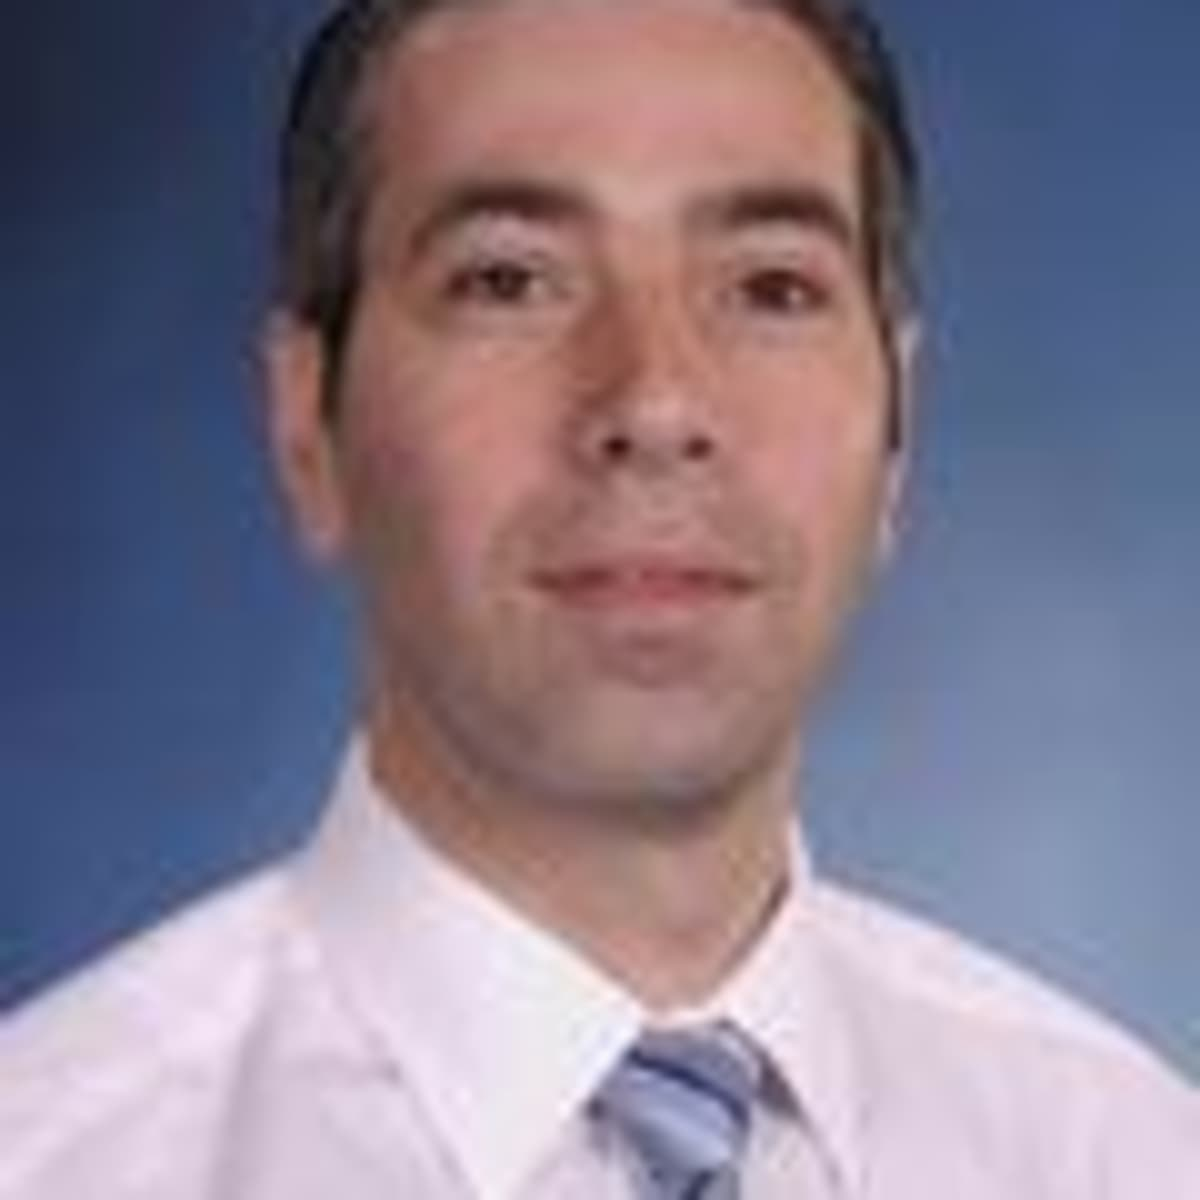 dr assaad semaan md springfield il gynecologist oncologist